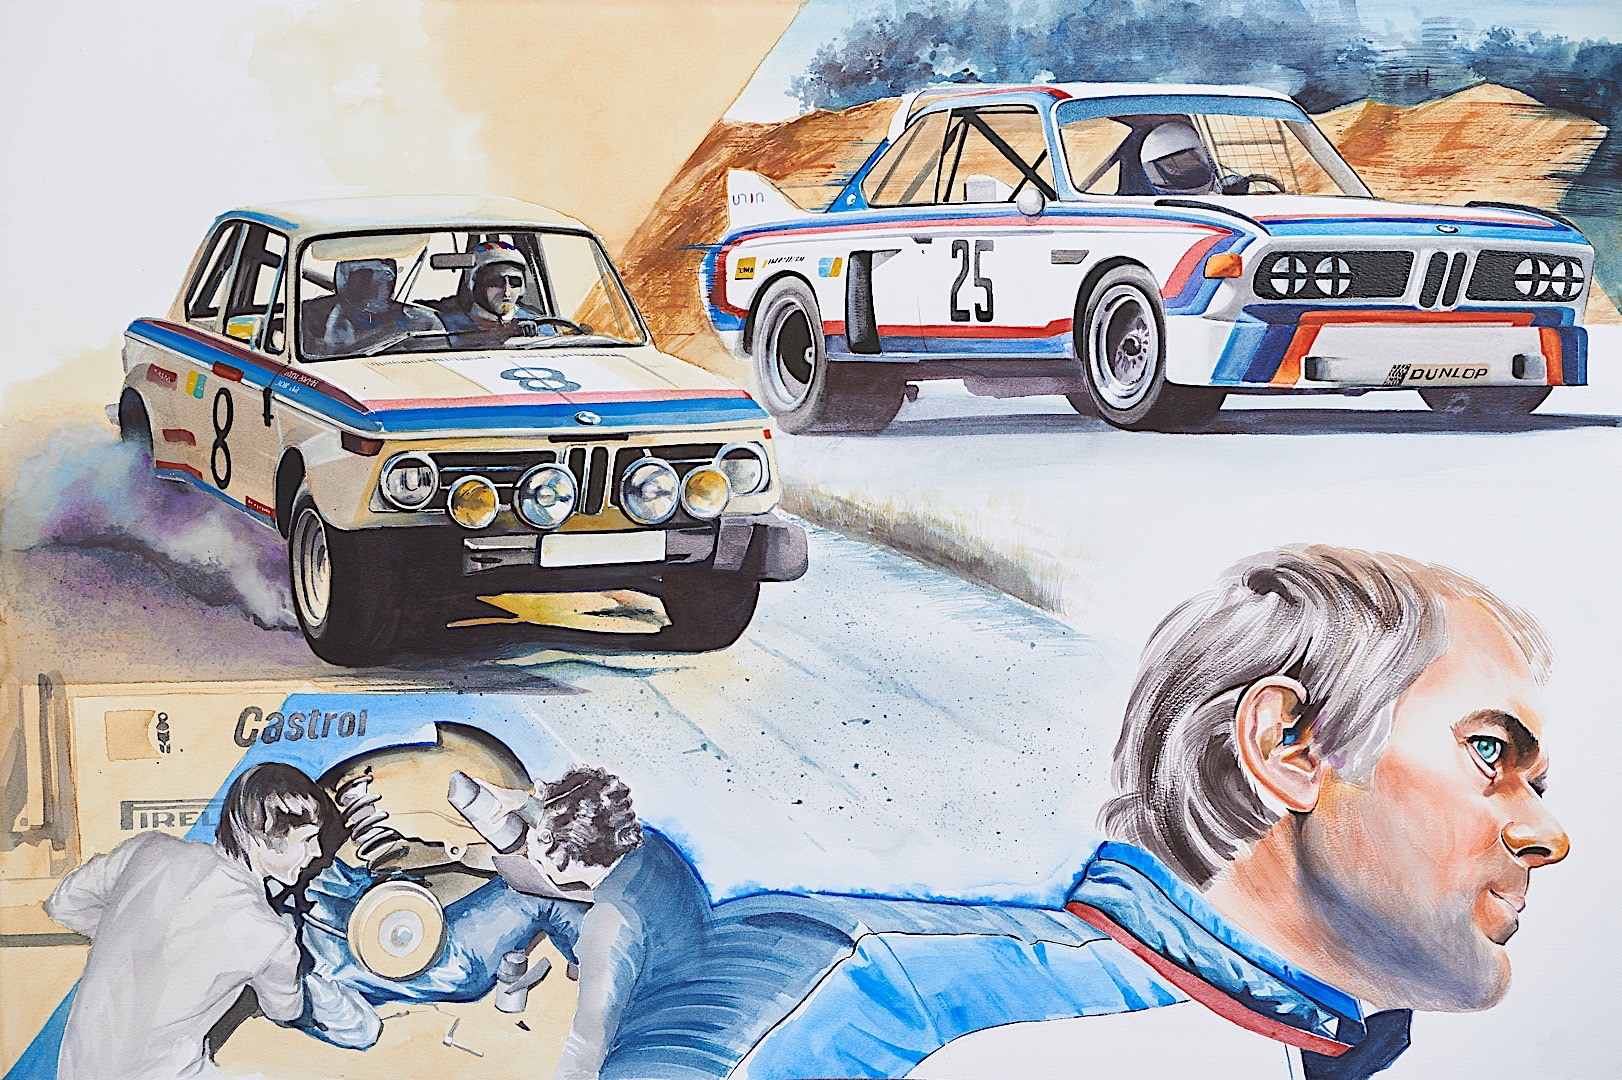 The True Story Behind the Meaning of the BMW ///M Colors